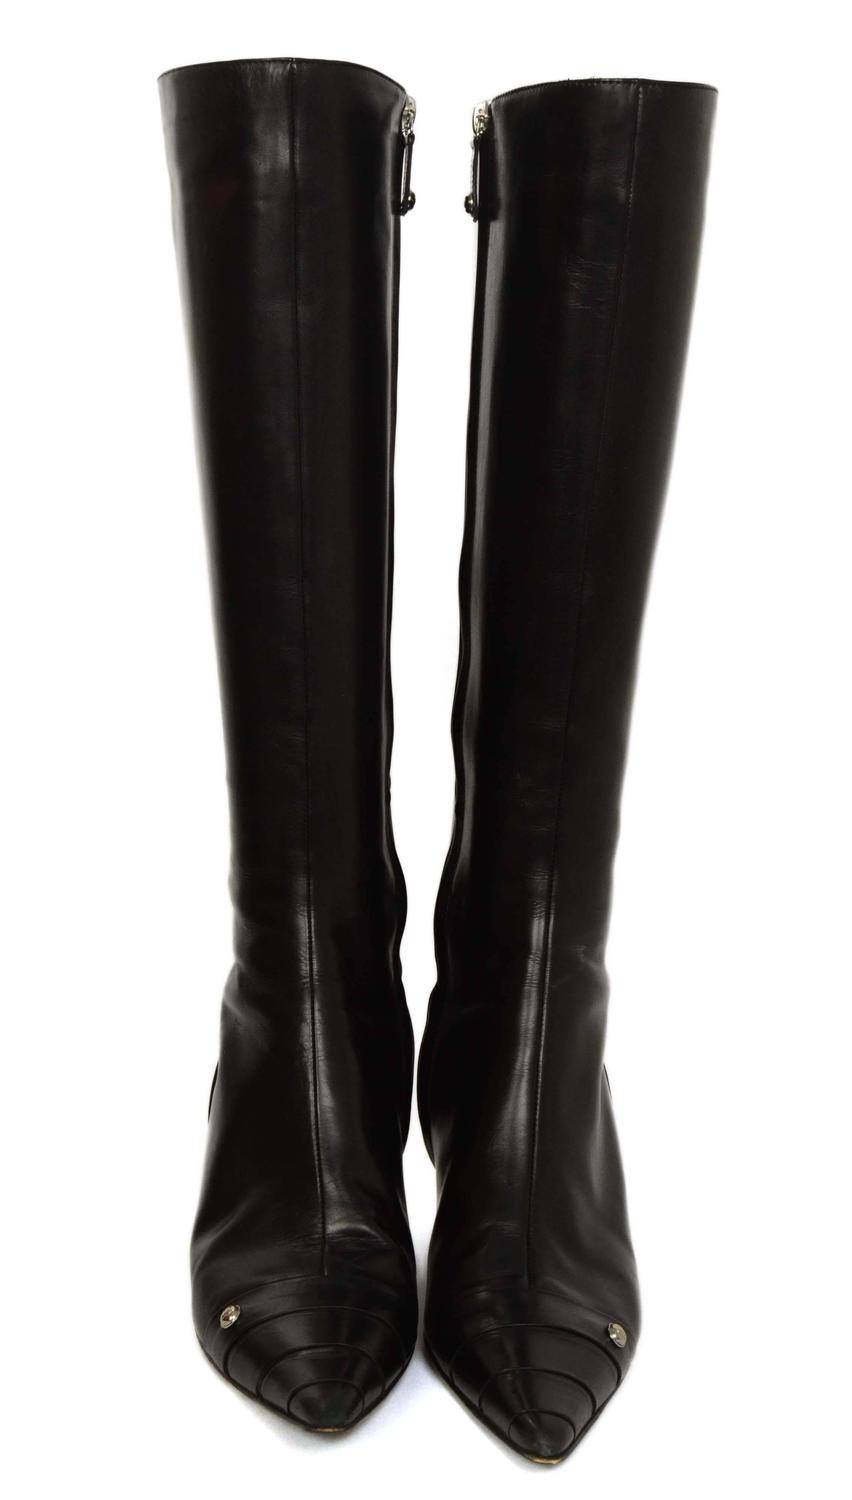 chanel black leather kitten heel knee high boots sz 38 at